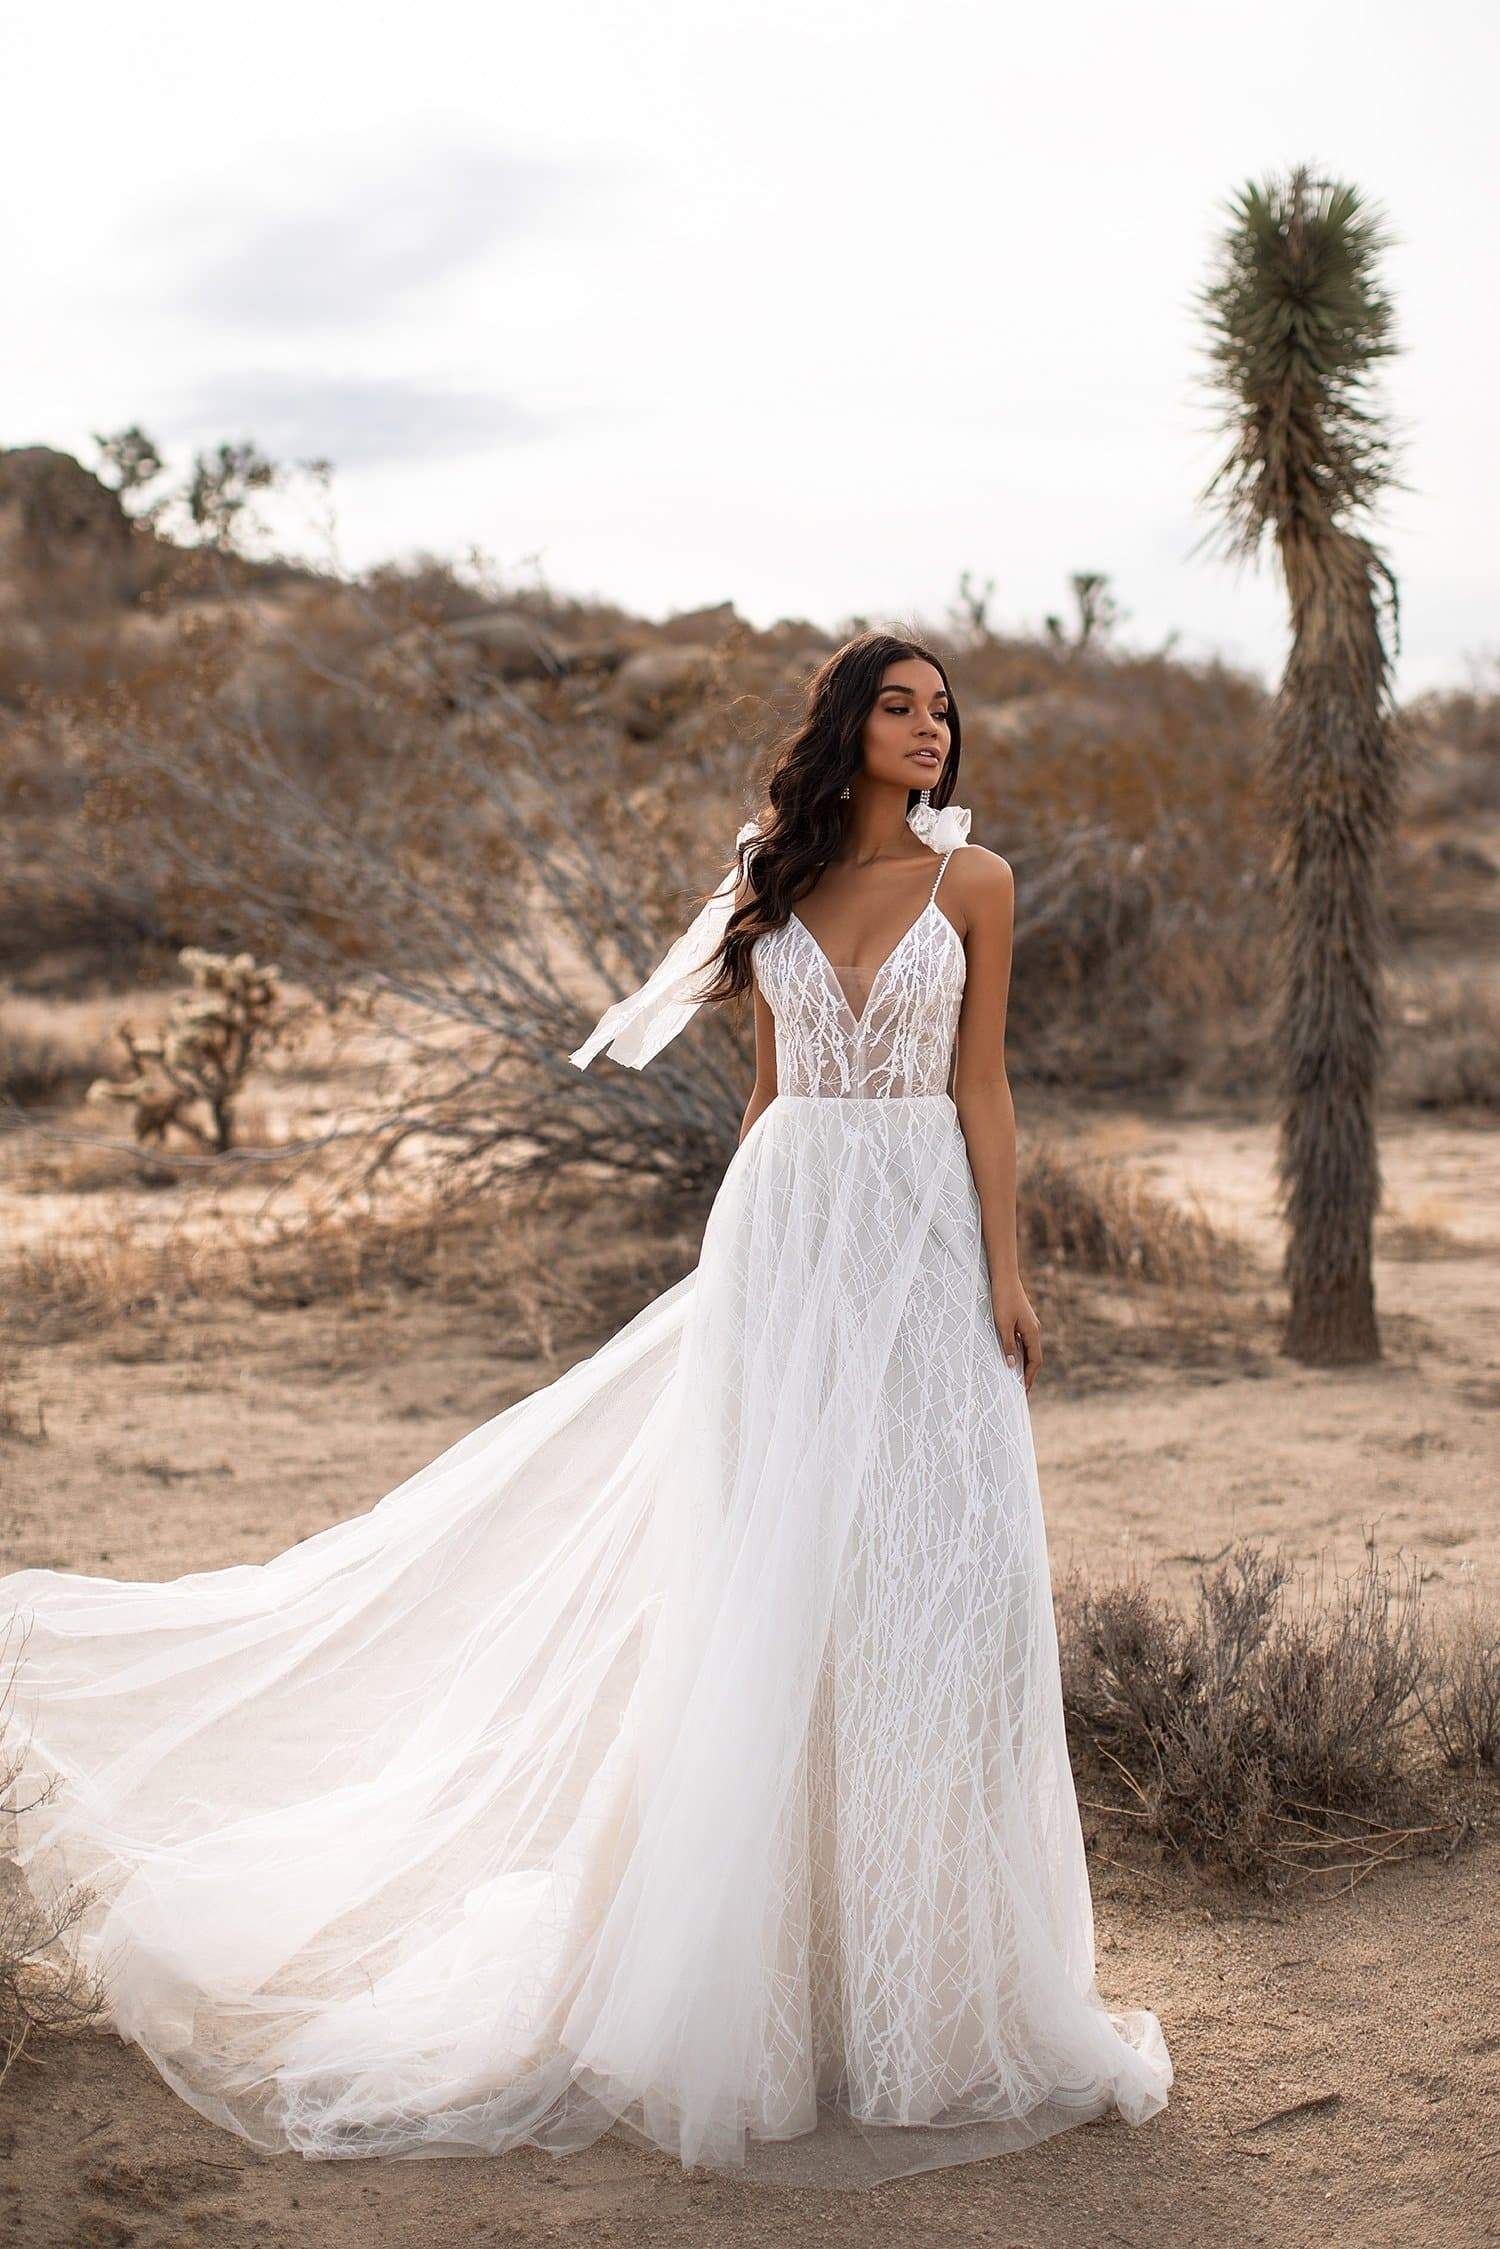 A&N Fiona - White Boho Bridal Tulle Gown with V-Neck and Tie-Up Straps